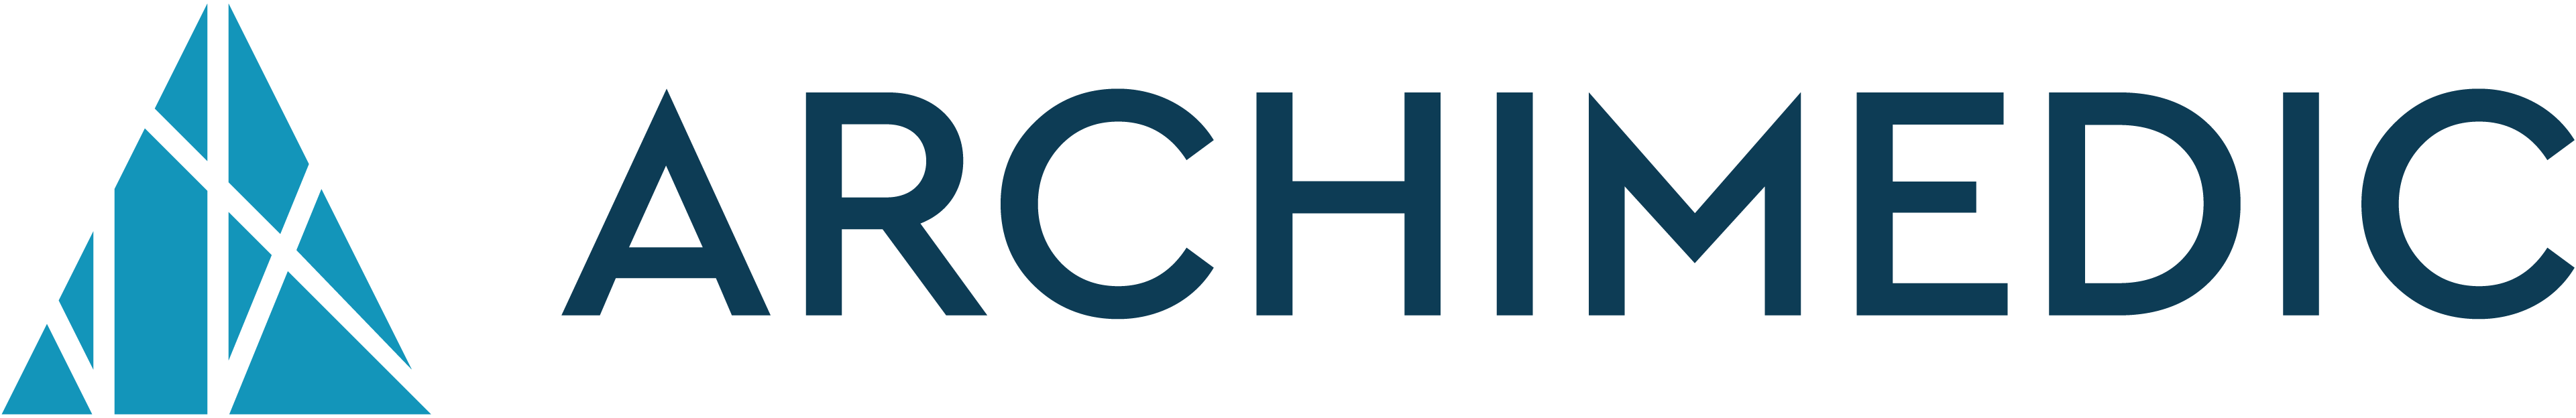 Archimedic Home Page